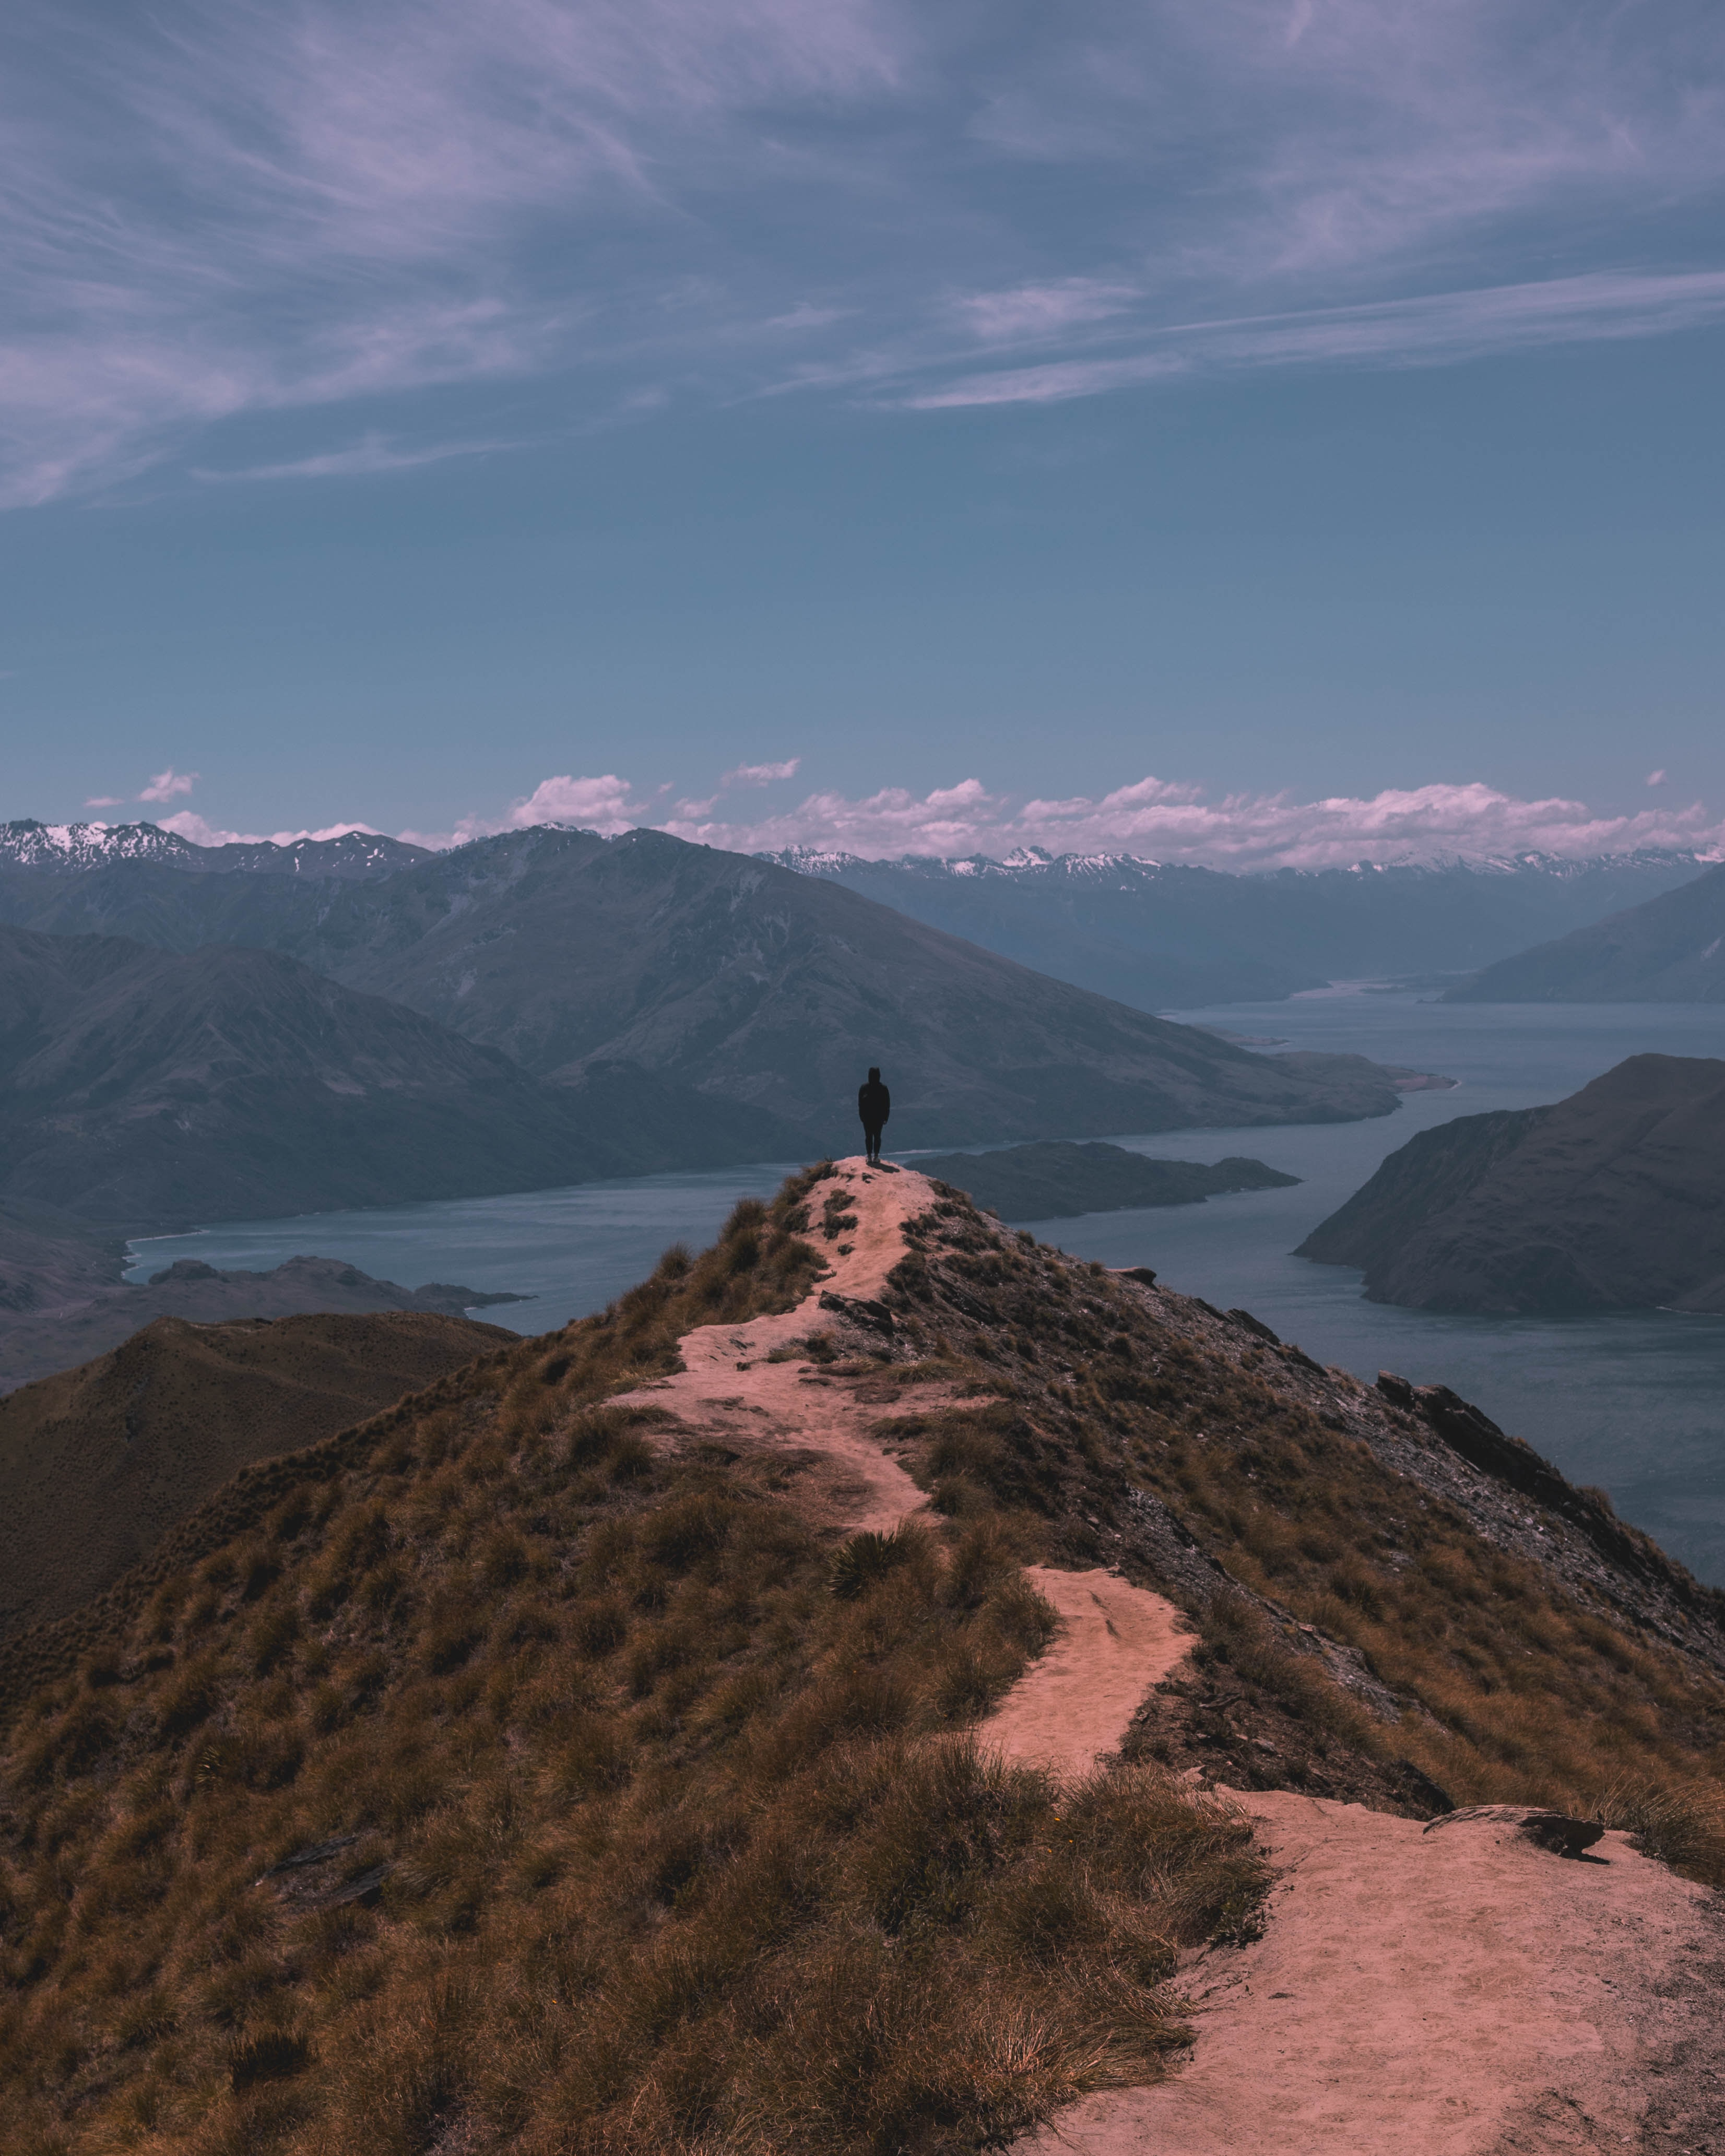 122500 download wallpaper Nature, Human, Person, Elevation, Freedom, Mountains screensavers and pictures for free